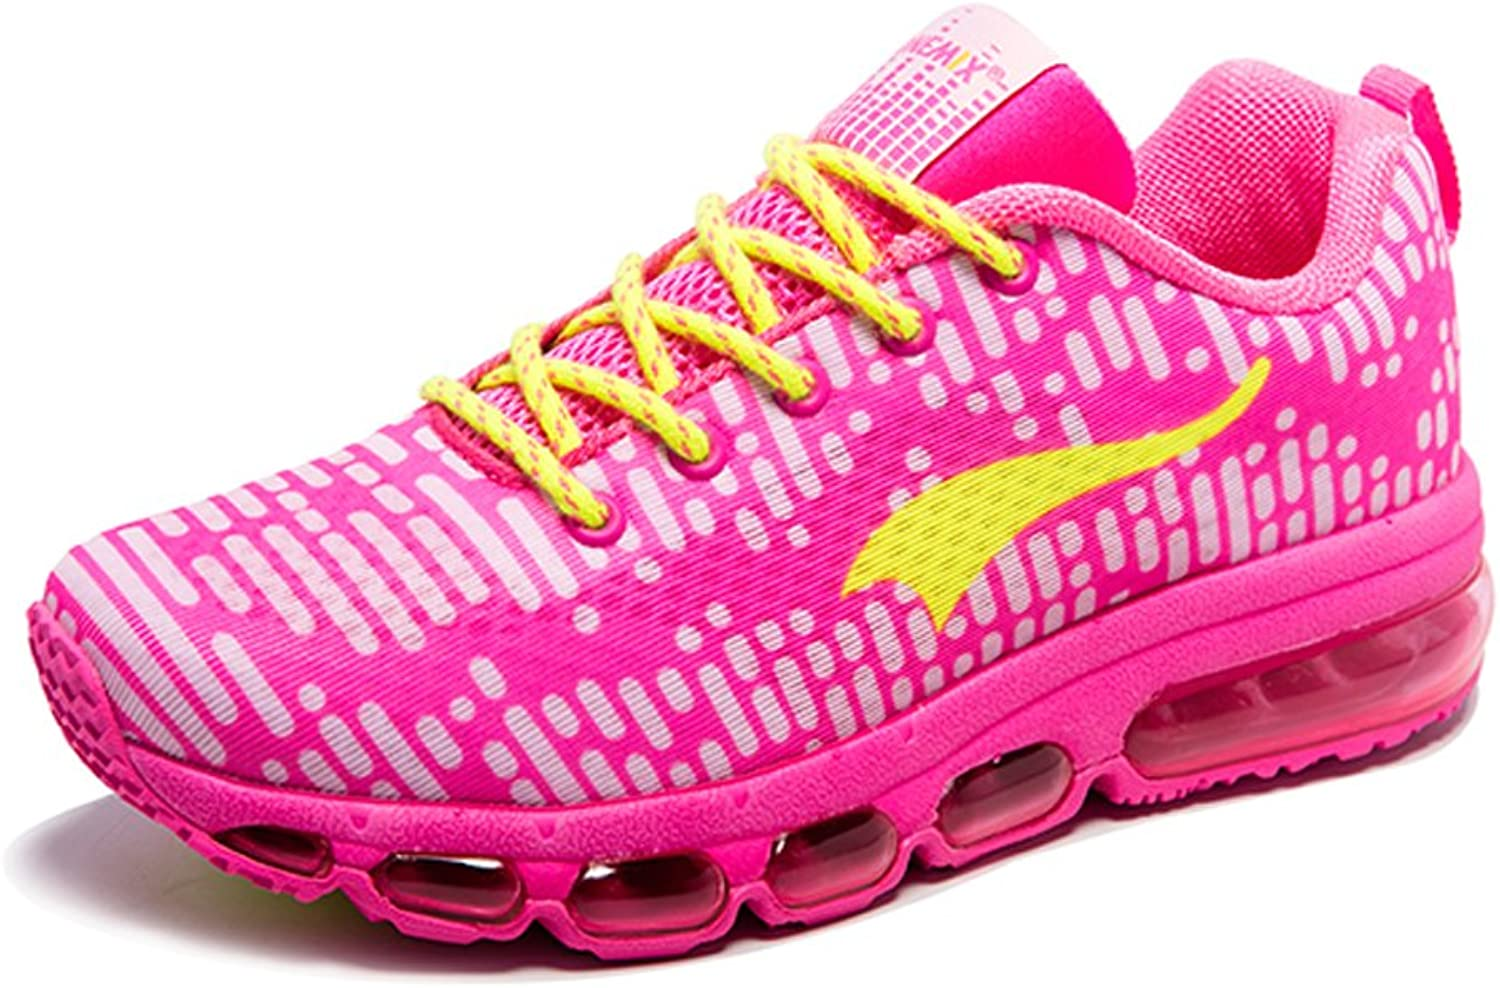 Cool Sports shoes Running Breathable Mesh Outdoor Sneaker Lace Up shoes Size EU 35-45